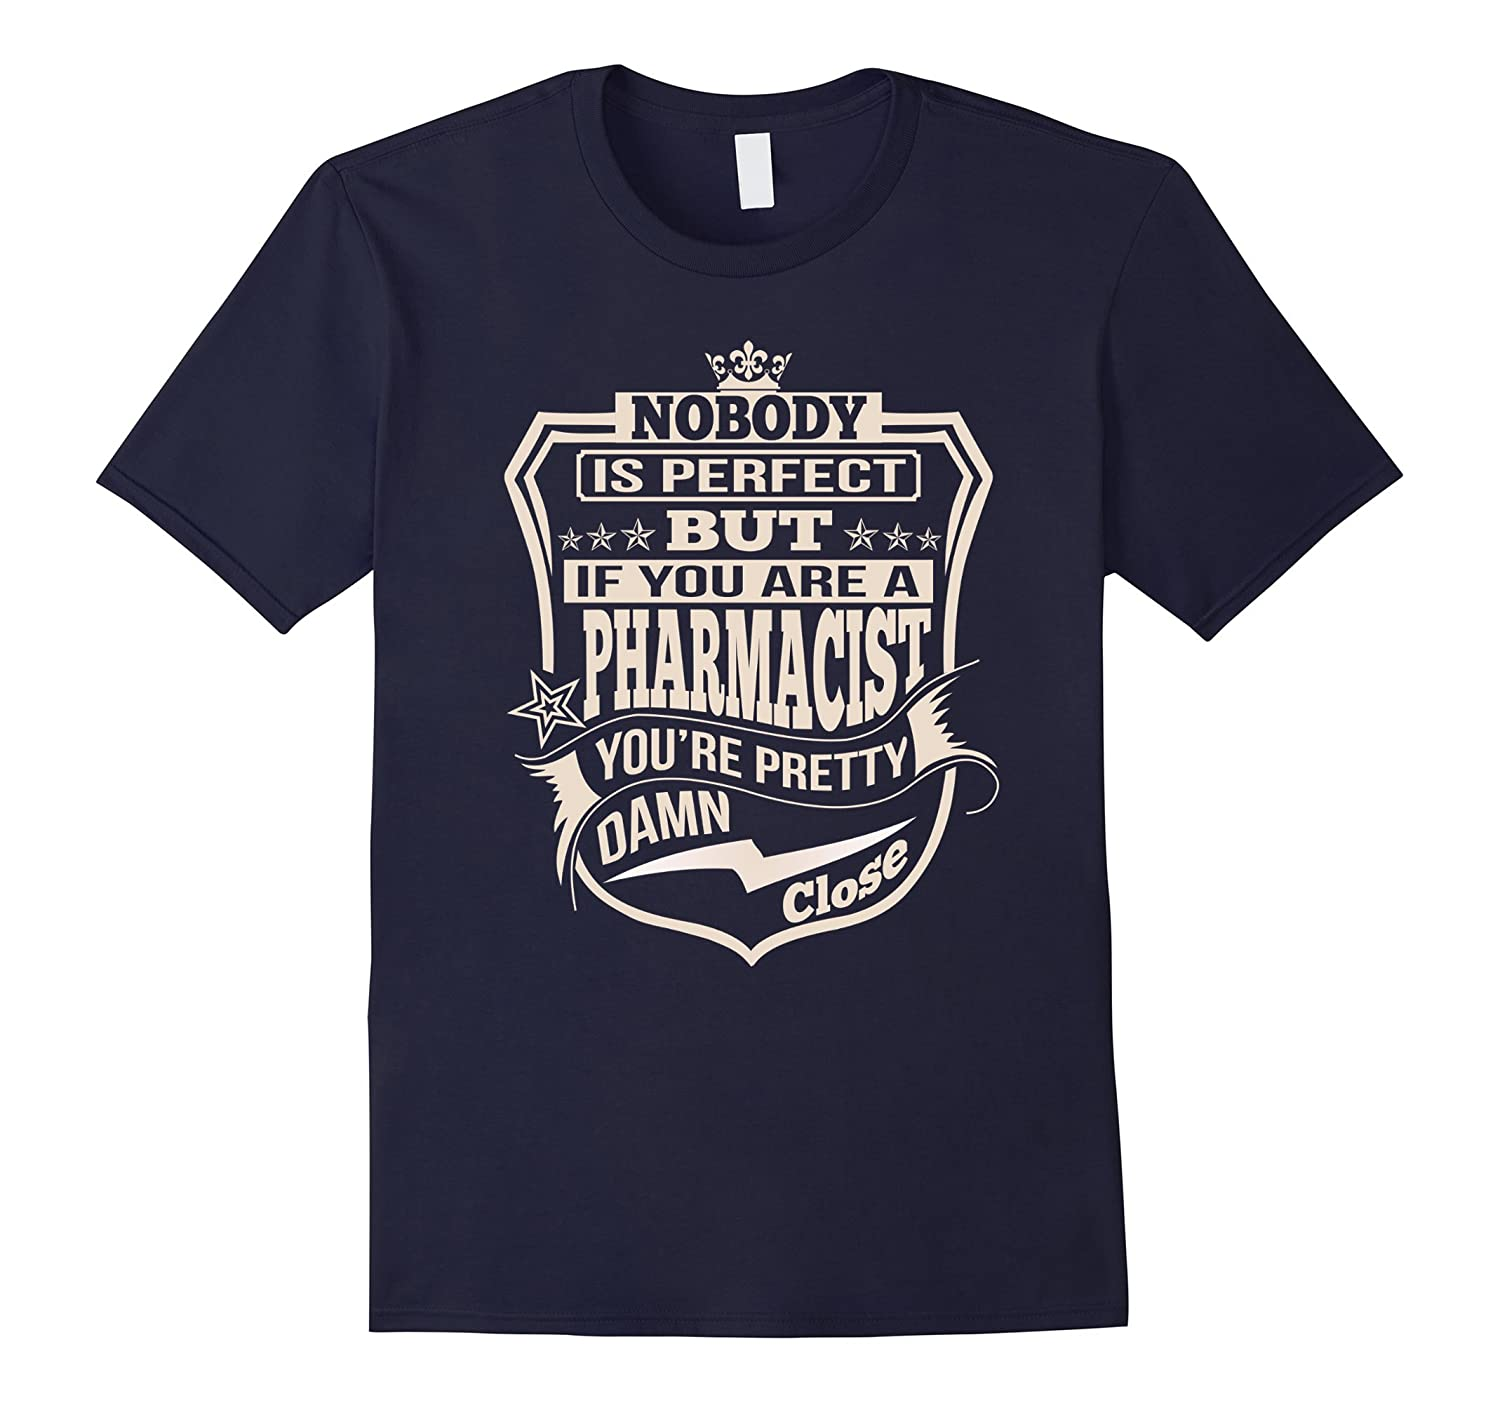 NOBODY PERFECT PHARMACIST JOB SHIRTS  PHARMACIST JOB TEES-Vaci